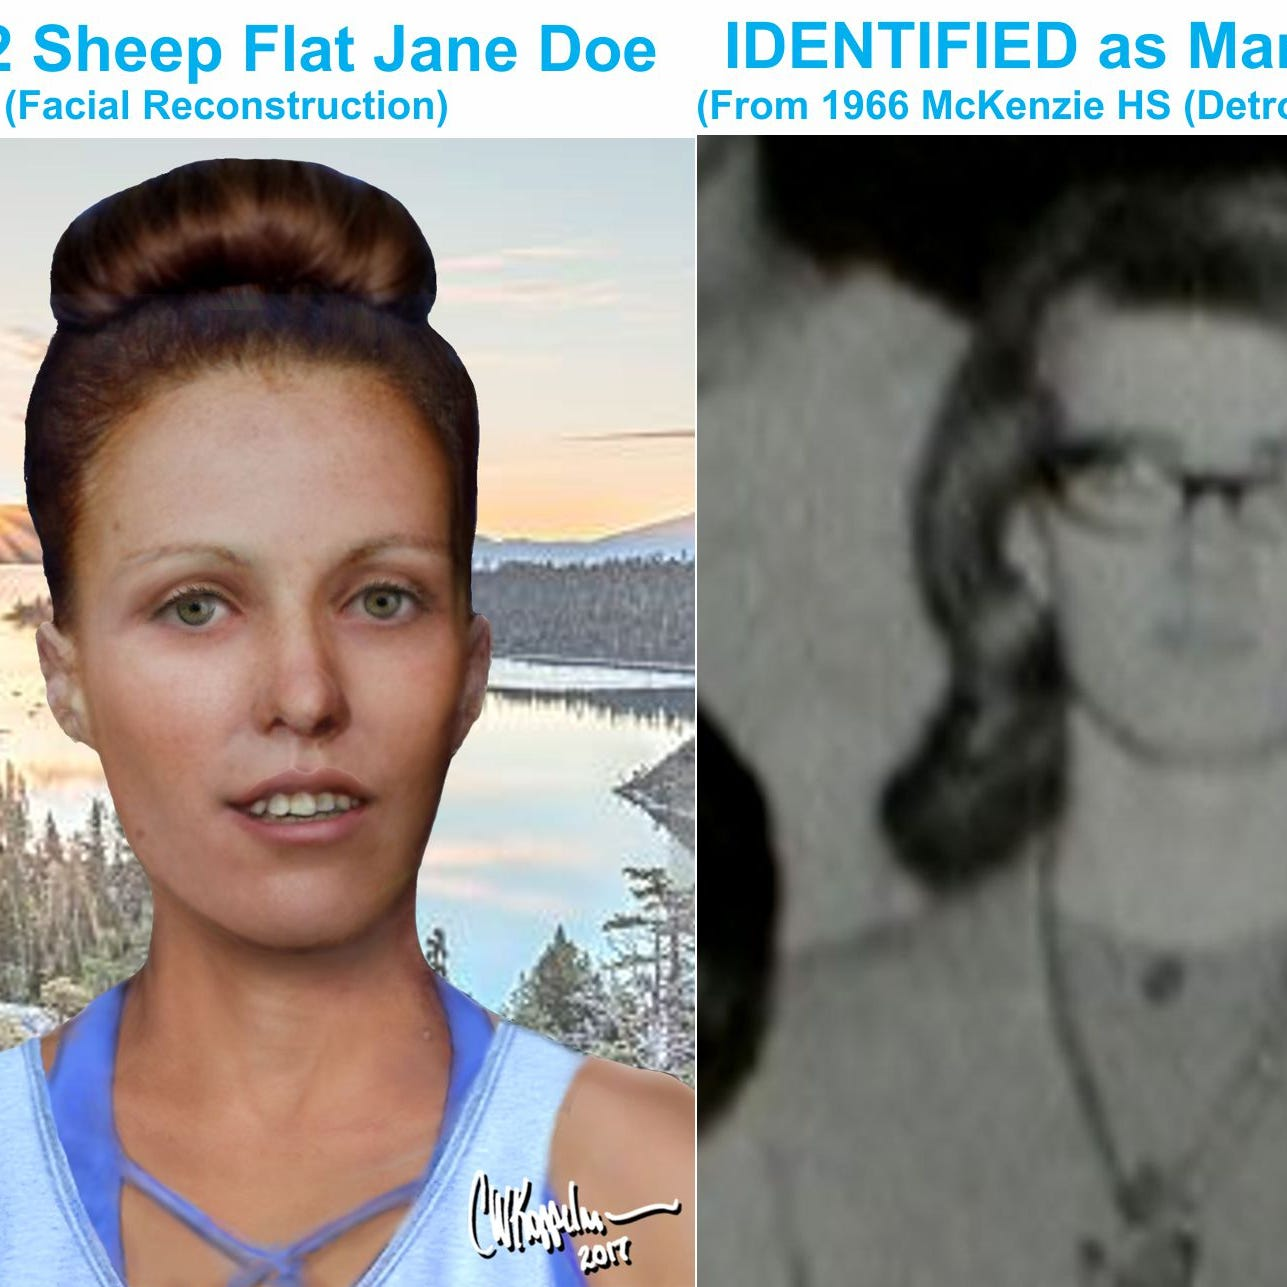 DNA reveals identity of woman killed in Nevada in 1982 — she was from Detroit